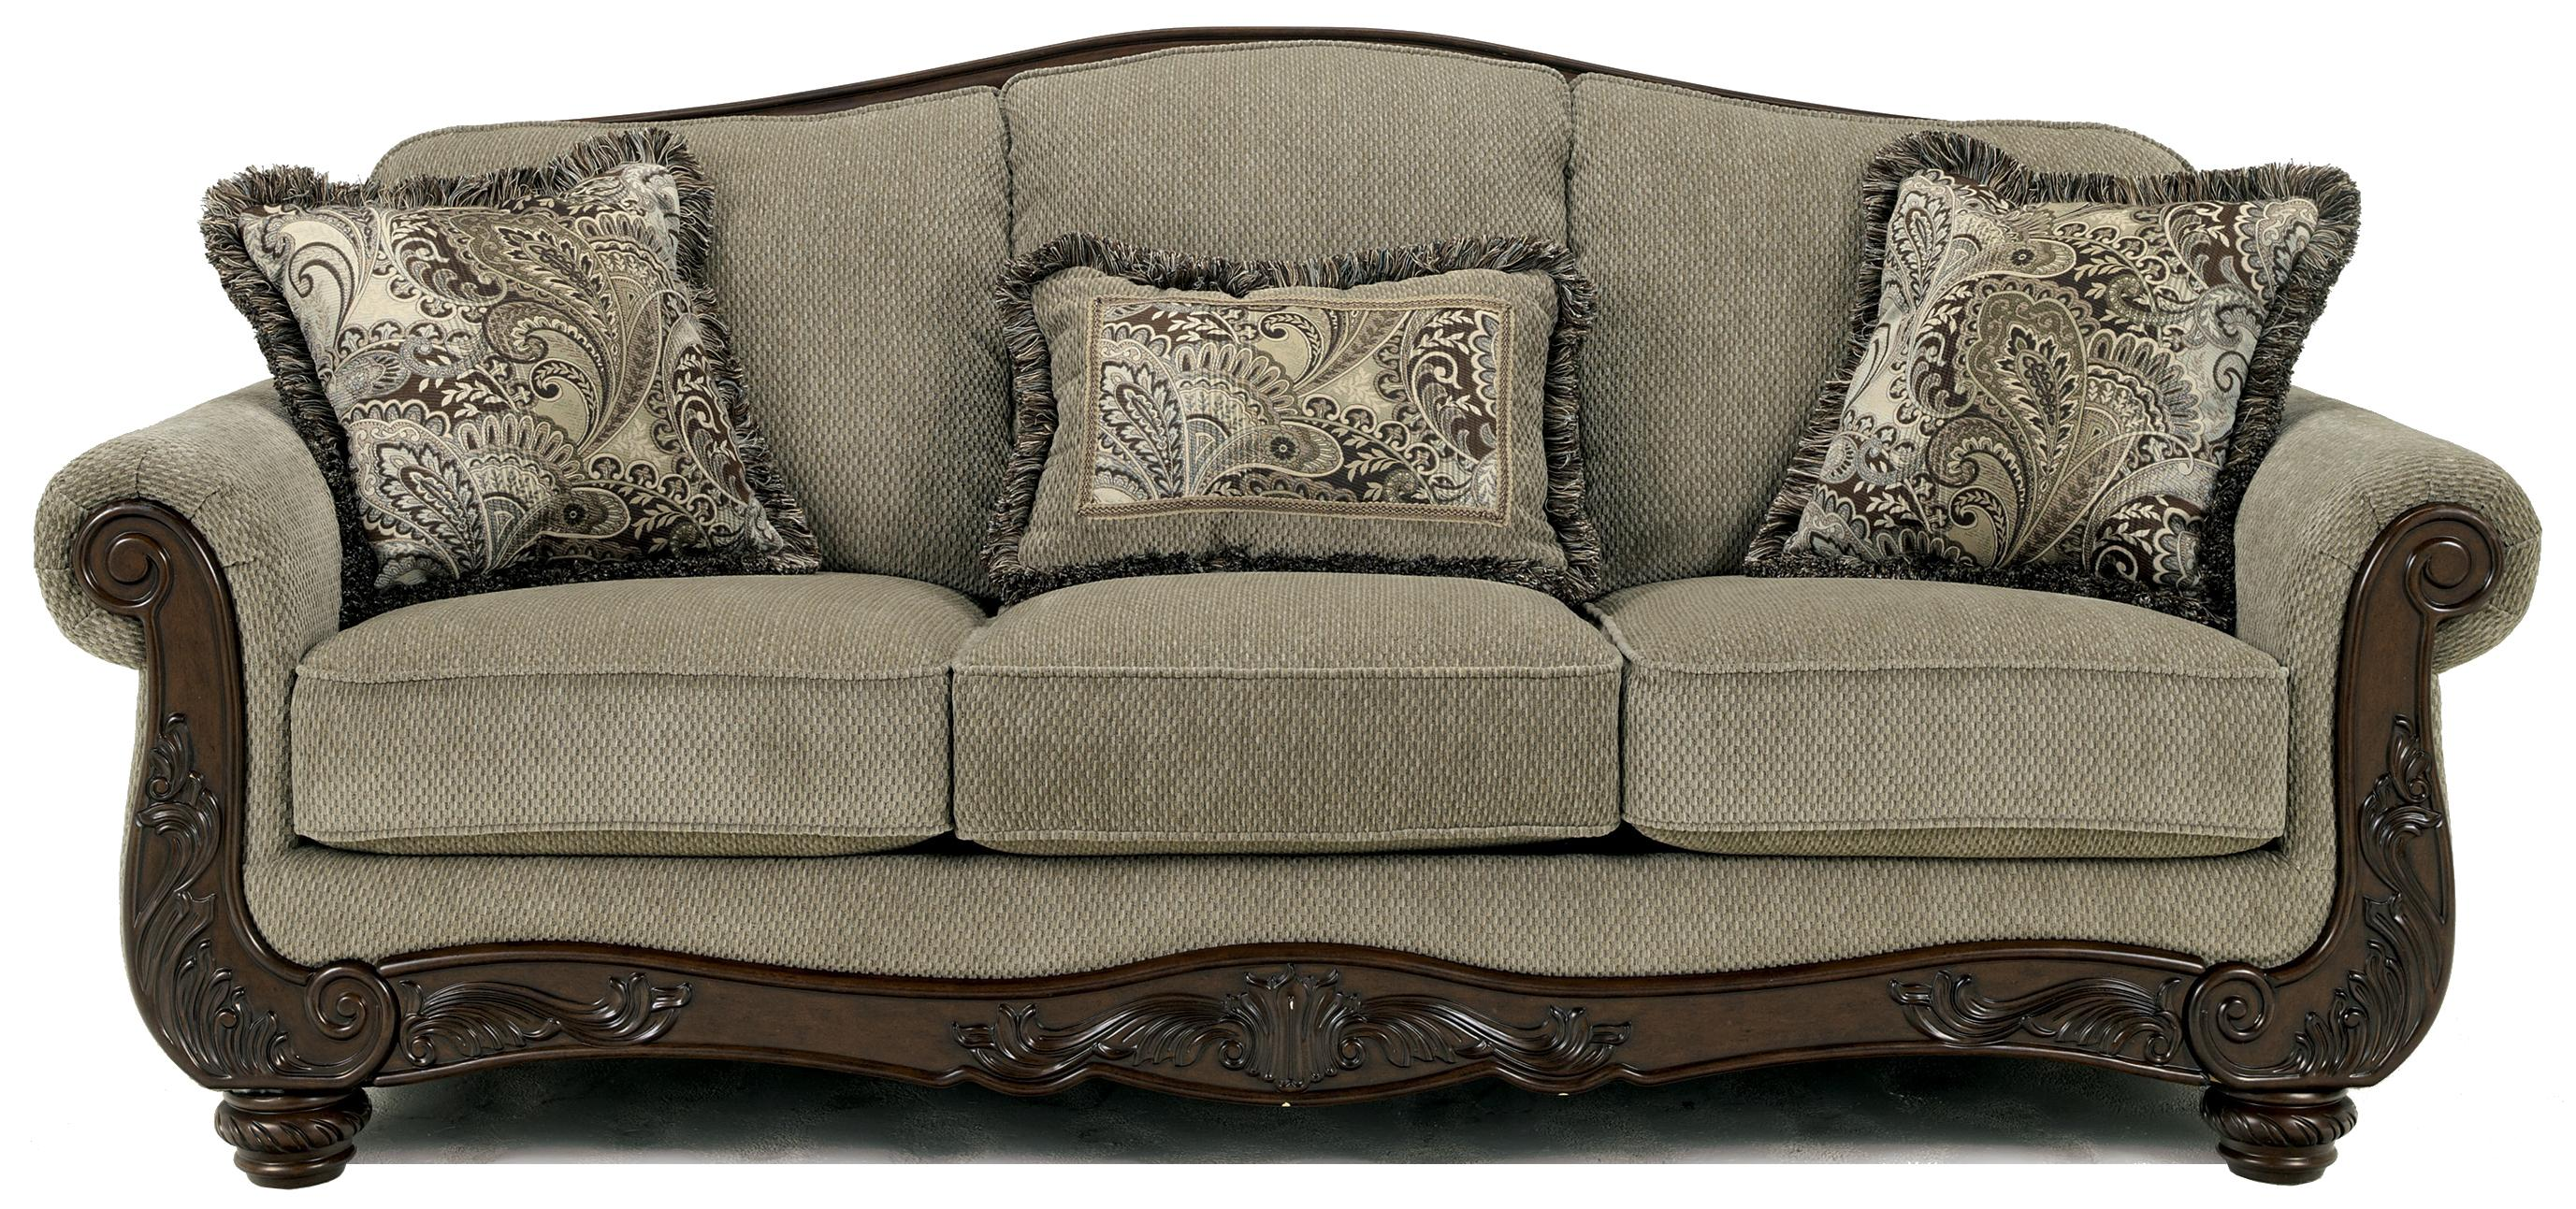 Signature Design by Ashley Martinsburg - Meadow Sofa - Item Number: 5730038